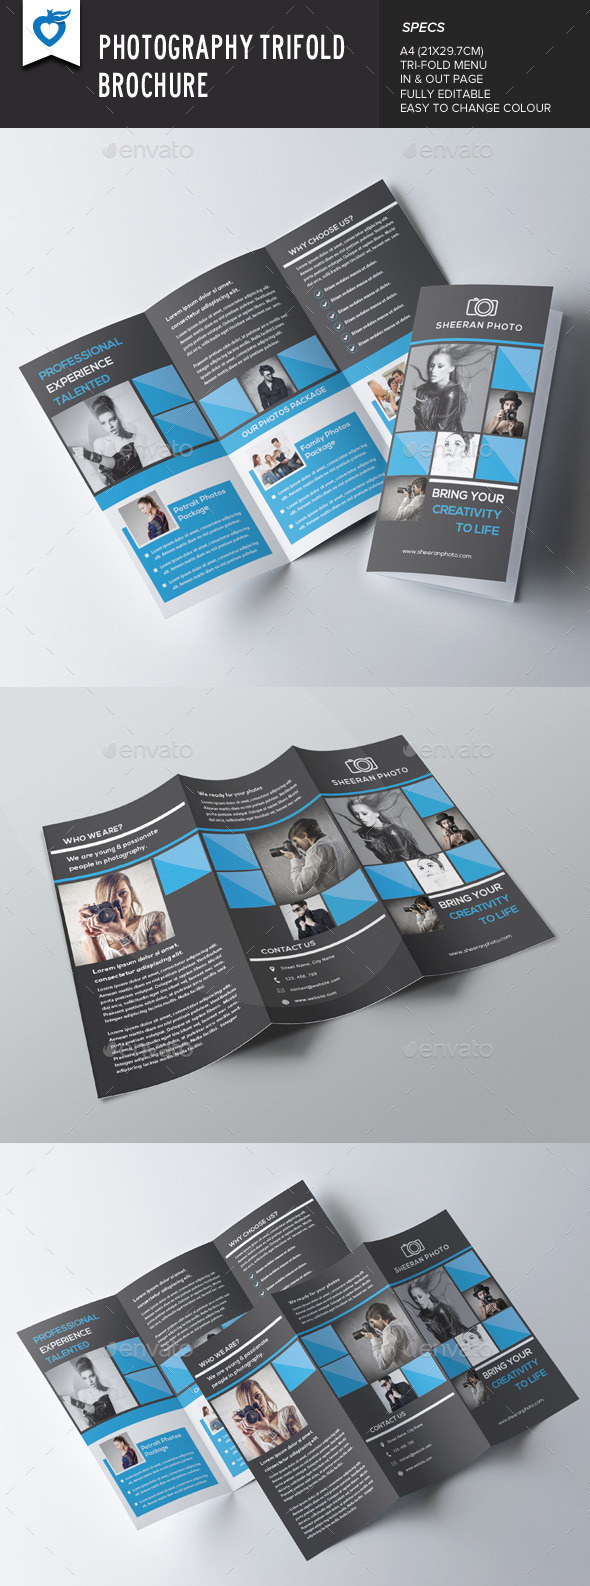 GraphicRiver Photography Trifold Brochure 8951653